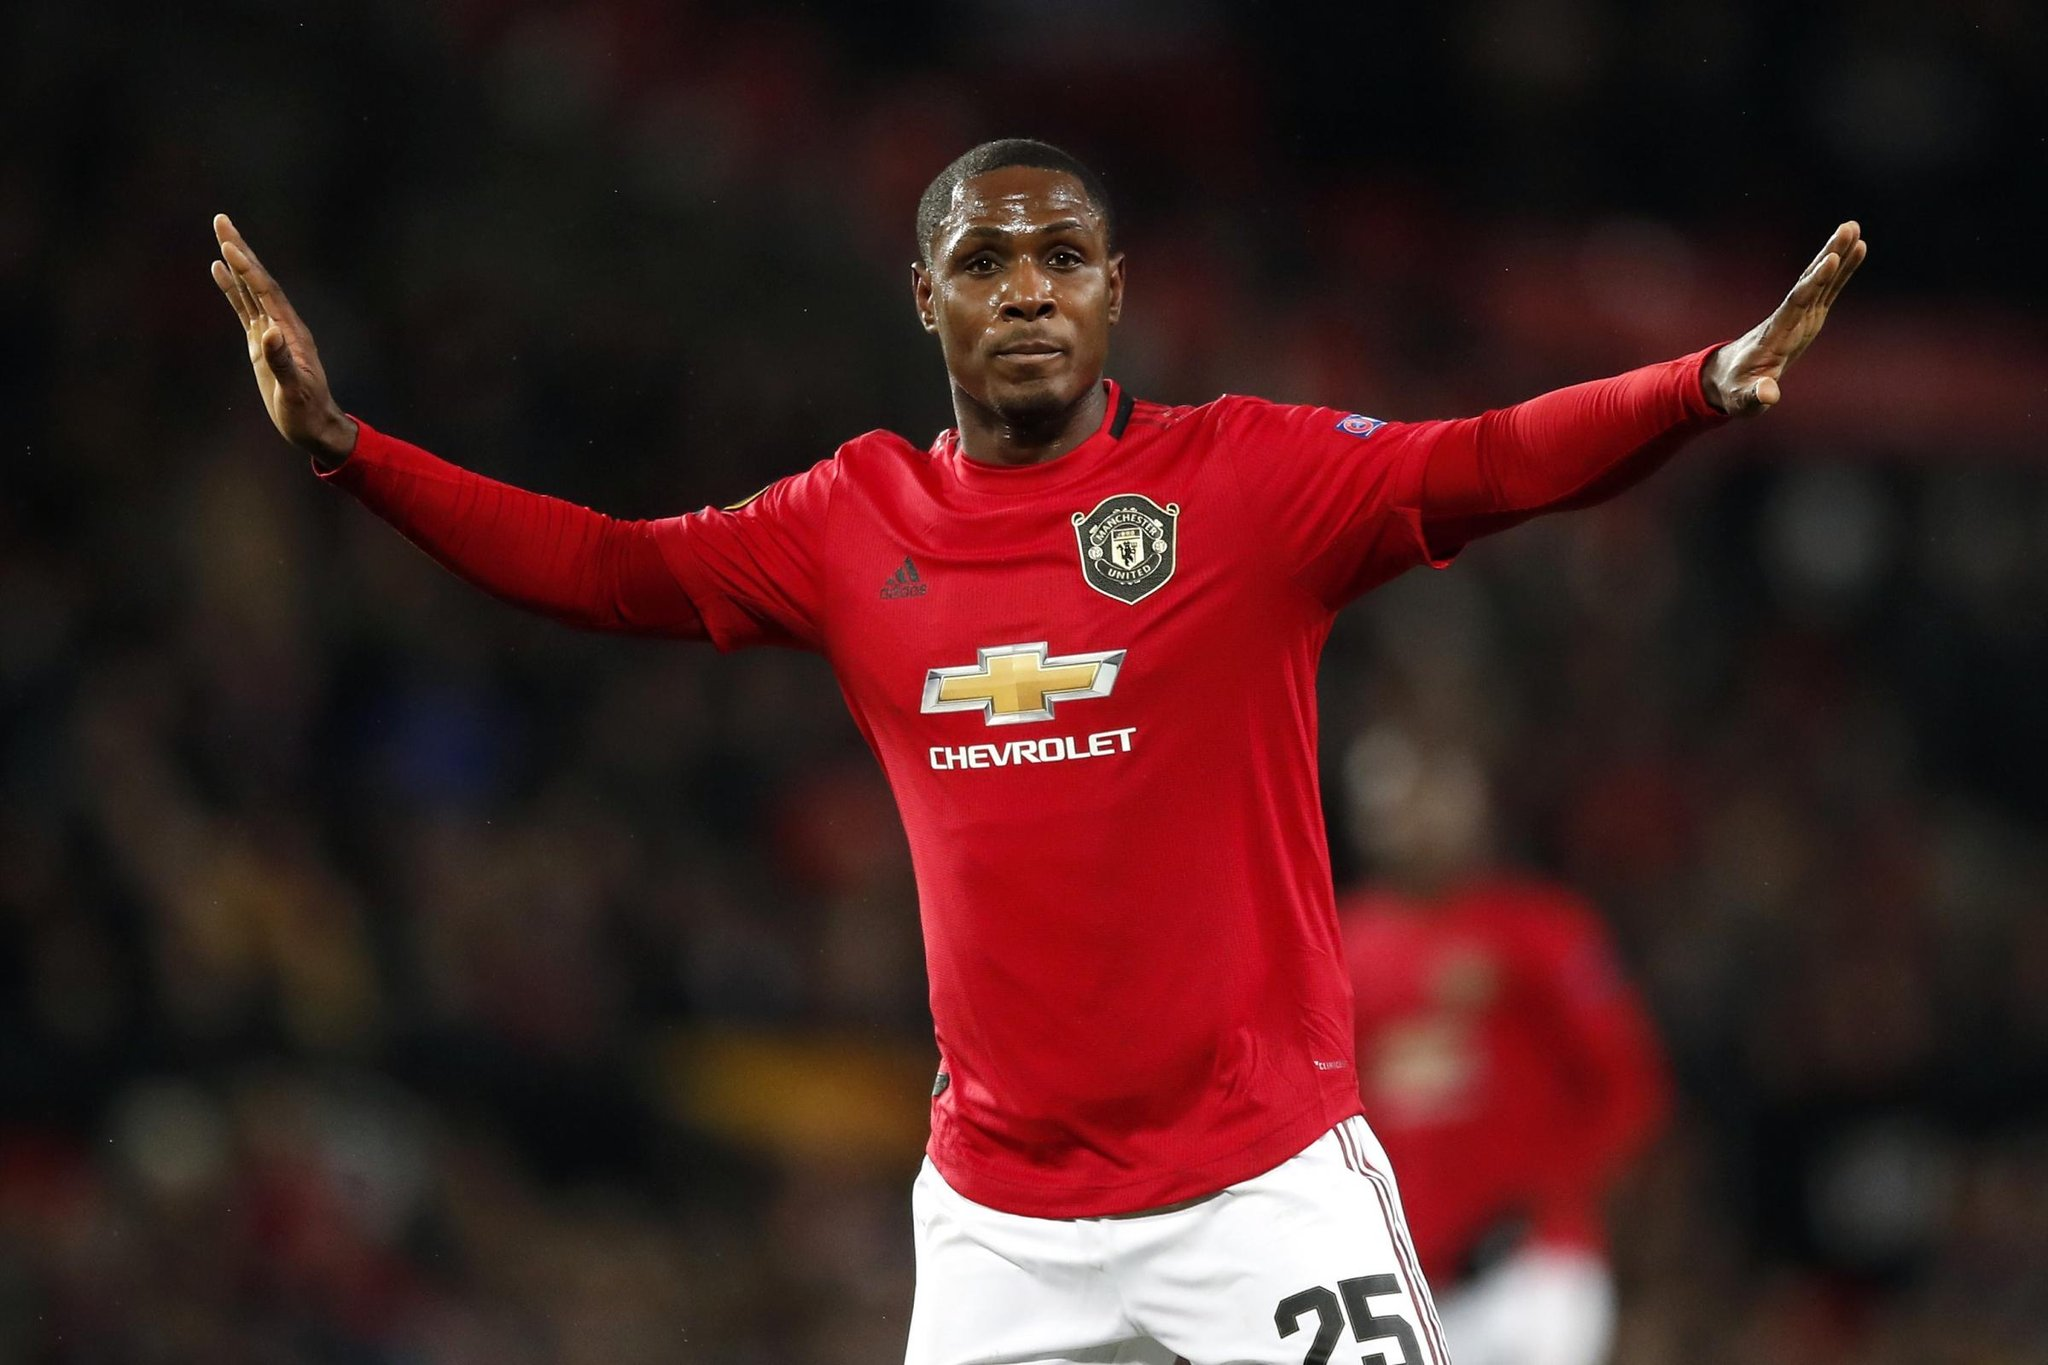 Ighalo To Walk Off The Pitch If Racially Abused Again